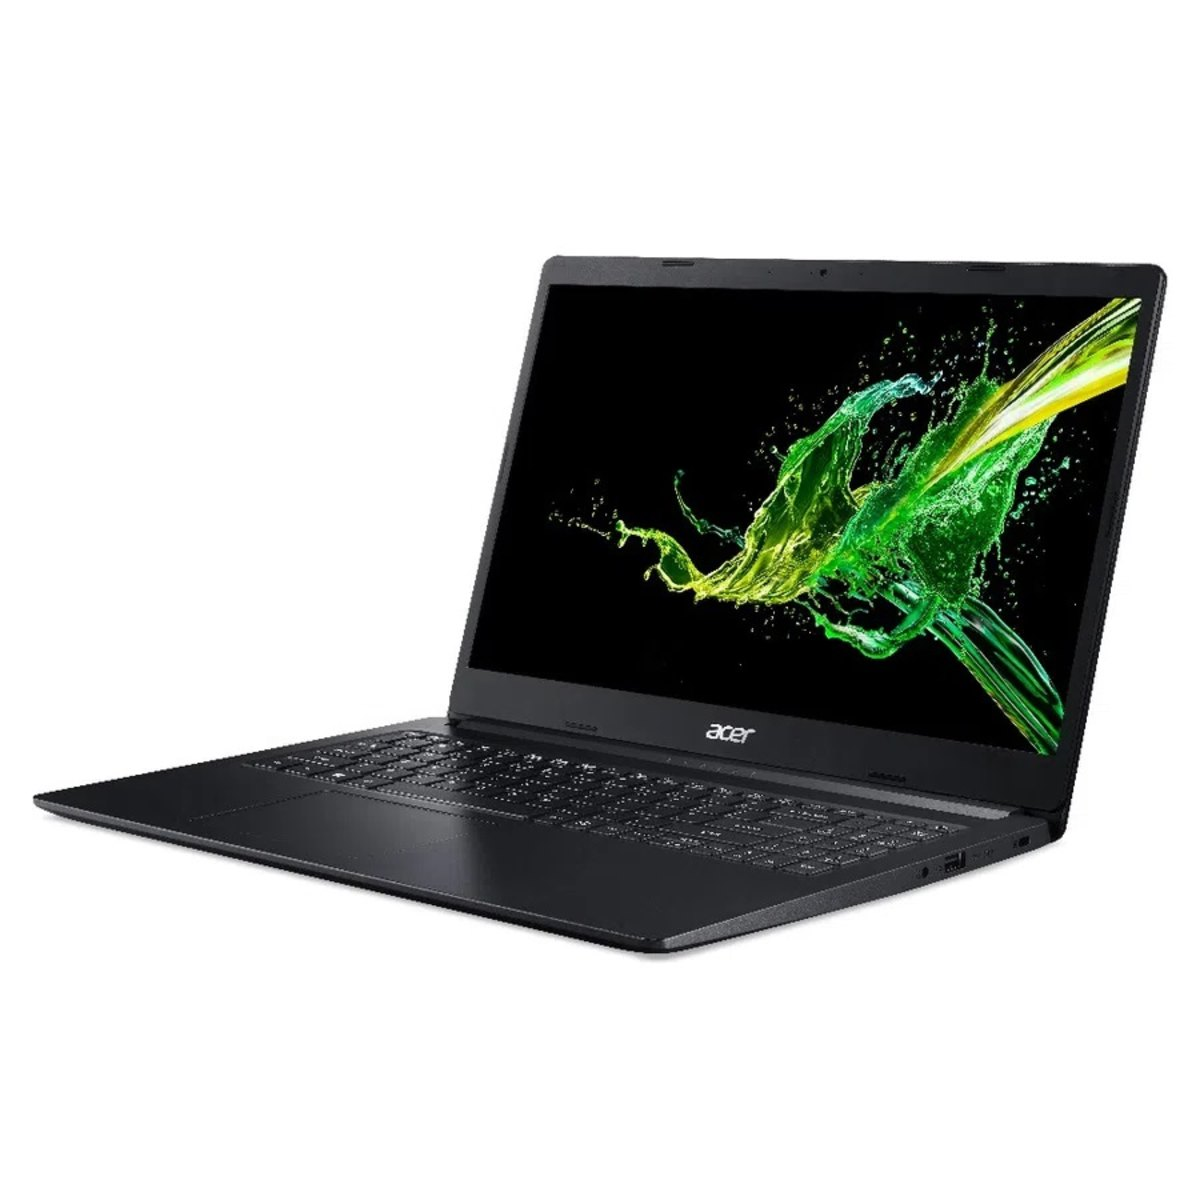 Notebook Acer A315 Intel Celeron N4000 Memoria 4gb Hd 1tb Tela 15.6' Hd Endless Os